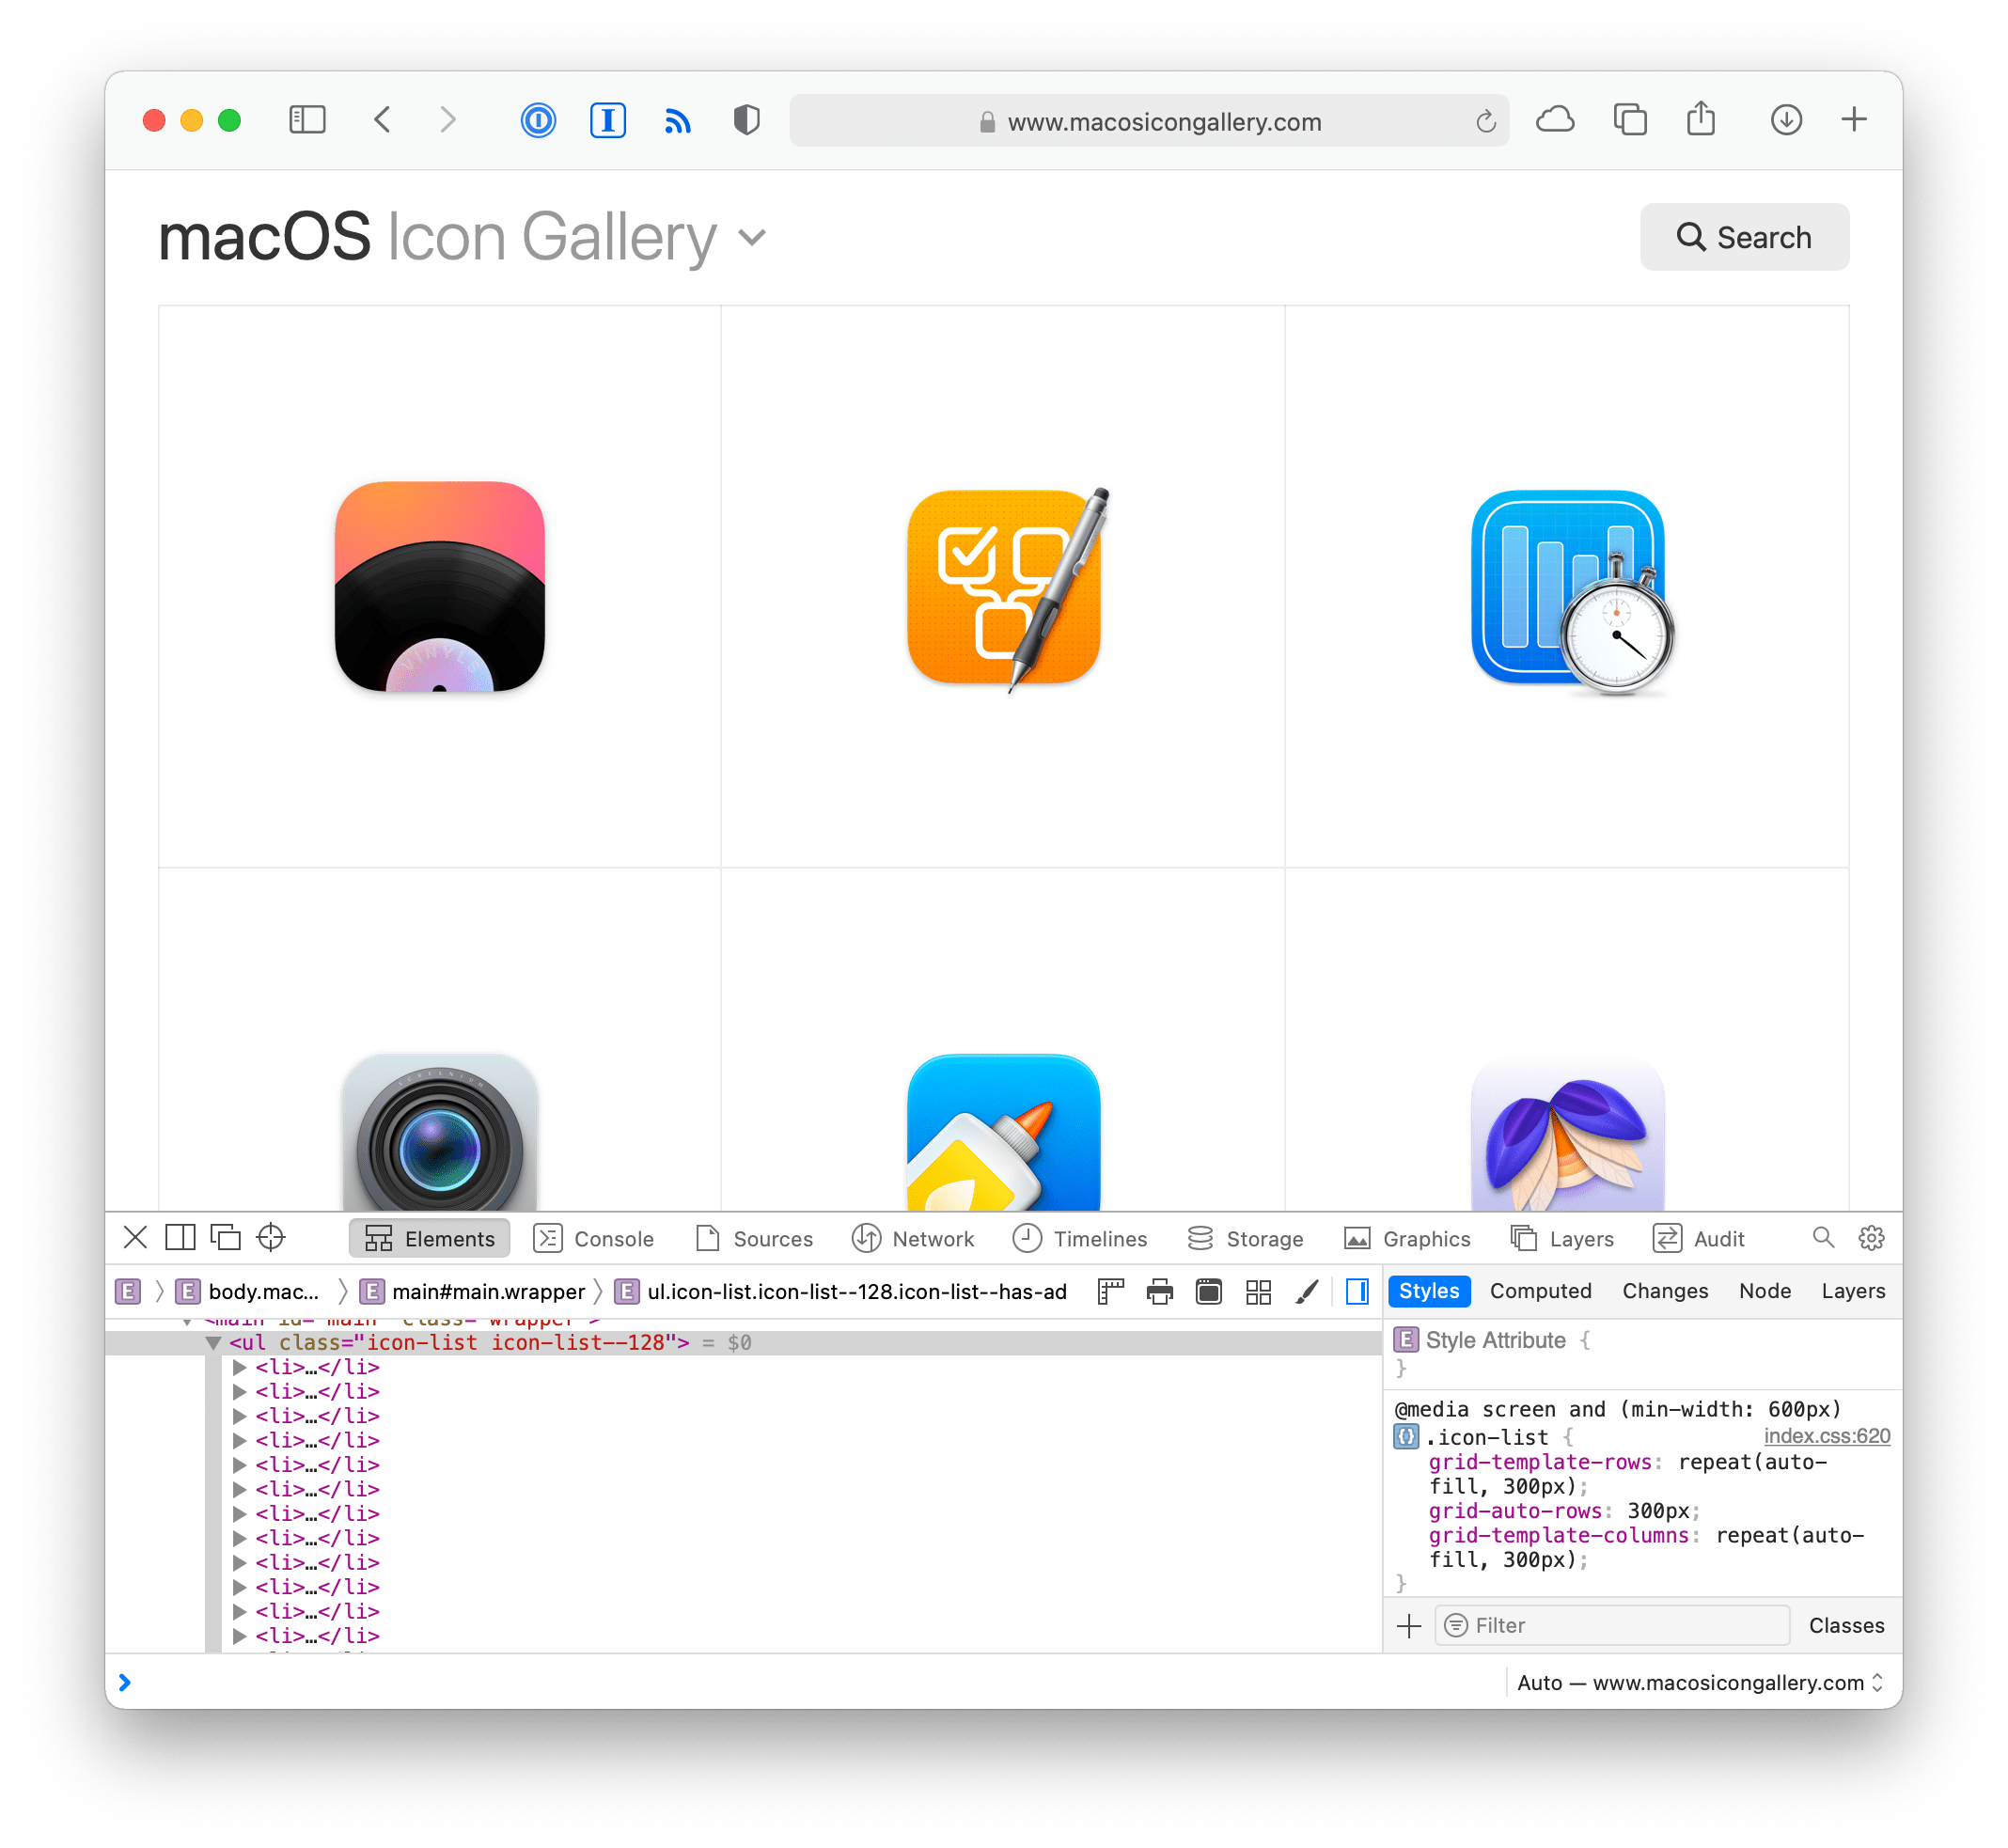 Screenshot of macOS Icon Gallery with the dev tools open showing HTML markup for the list of icons.